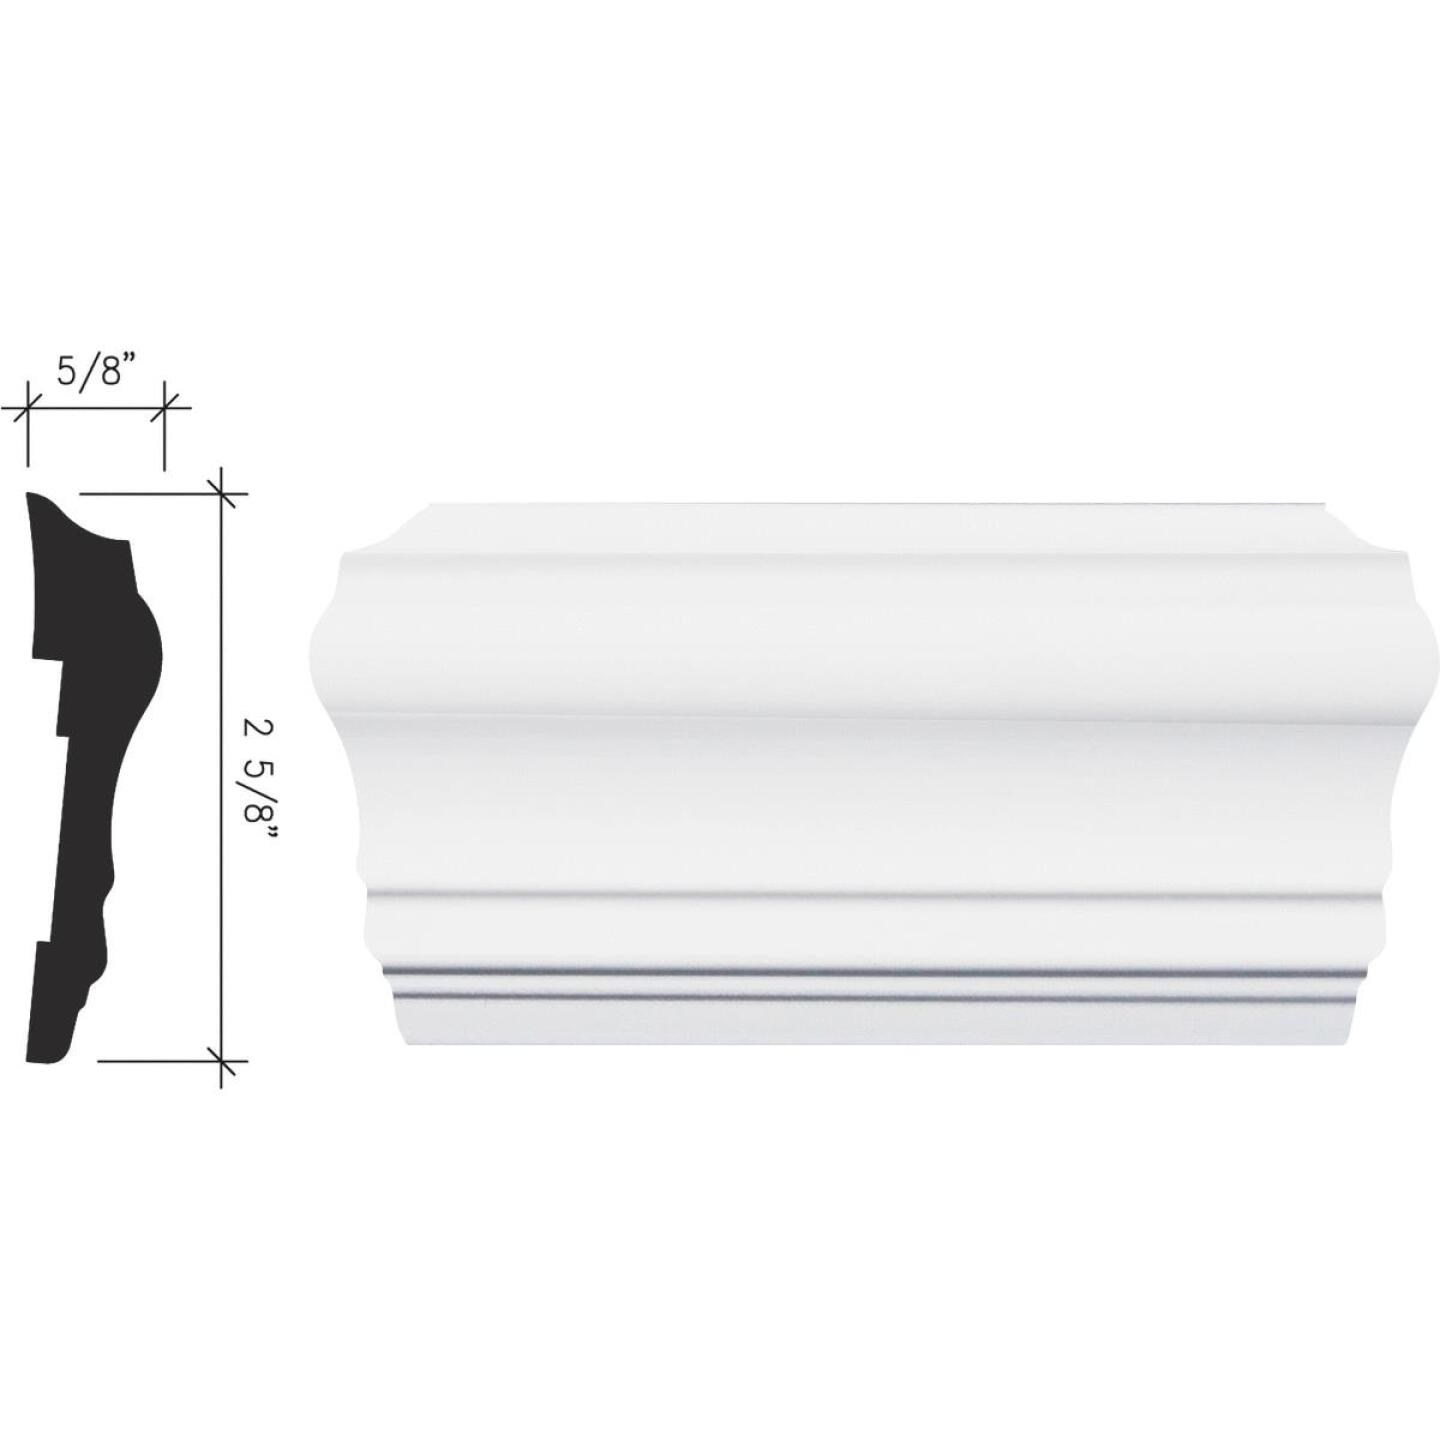 Inteplast Building Products 5/8 In. x 2-5/8 In. x 8 Ft. Crystal White Polystyrene Chair Rail Molding Image 1